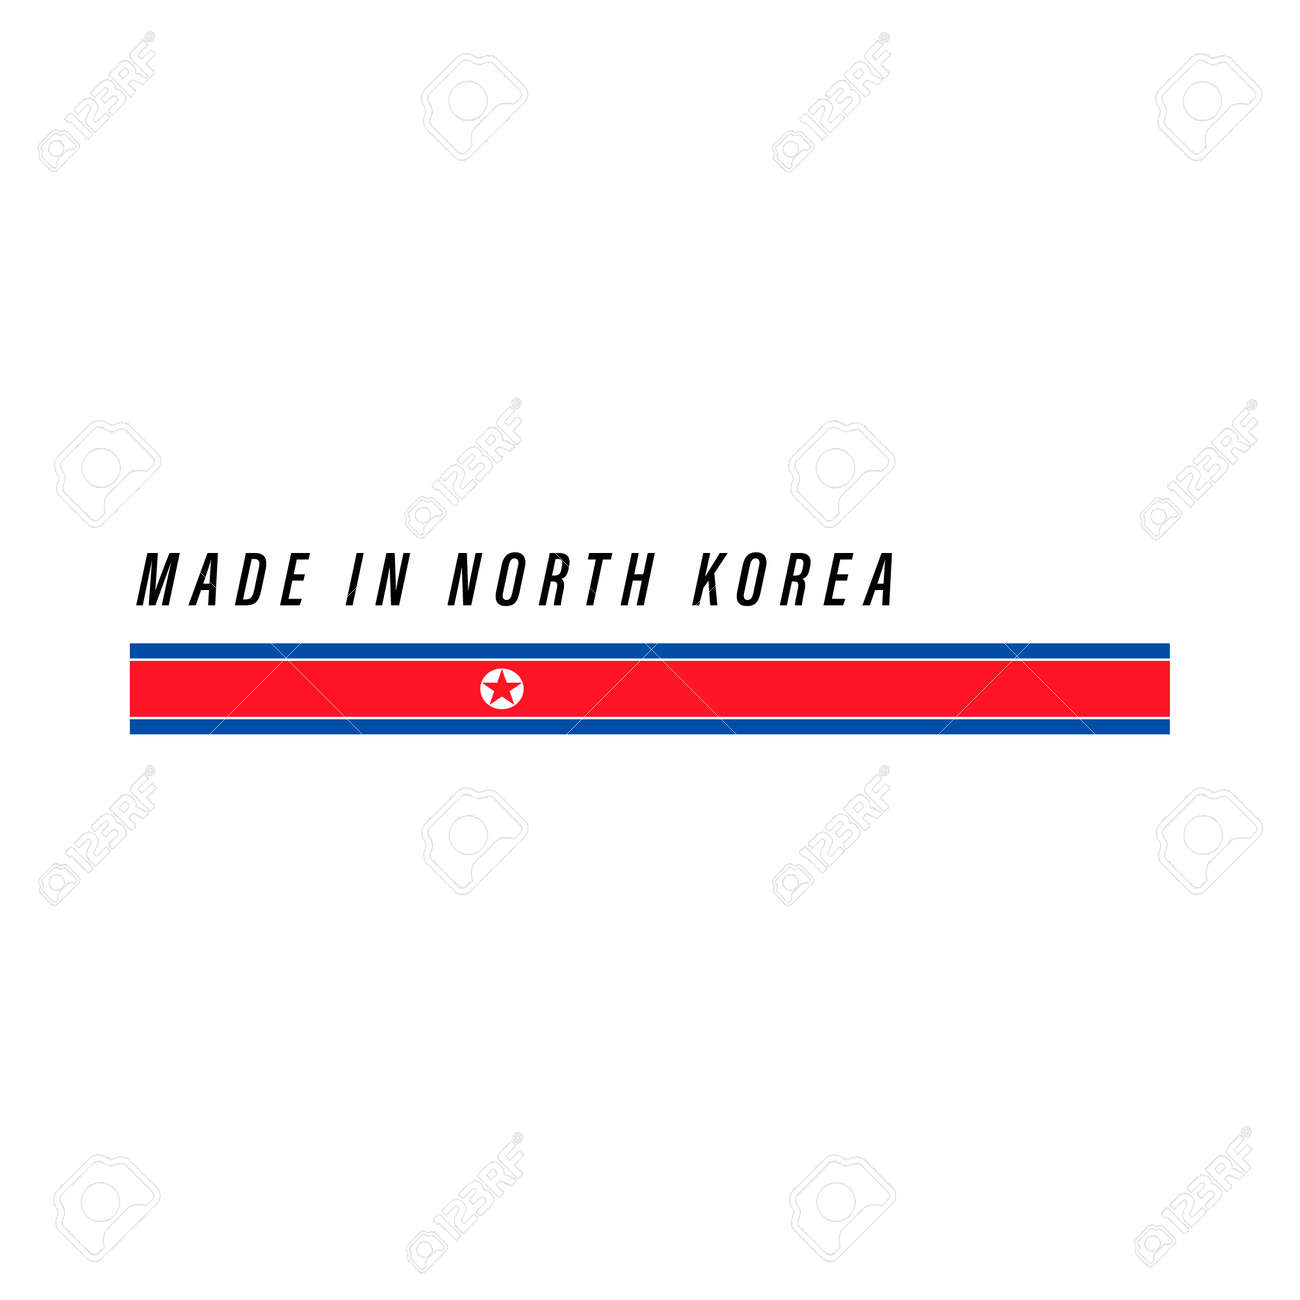 Made in North Korea, badge or label with flag isolated on white background - 168929107